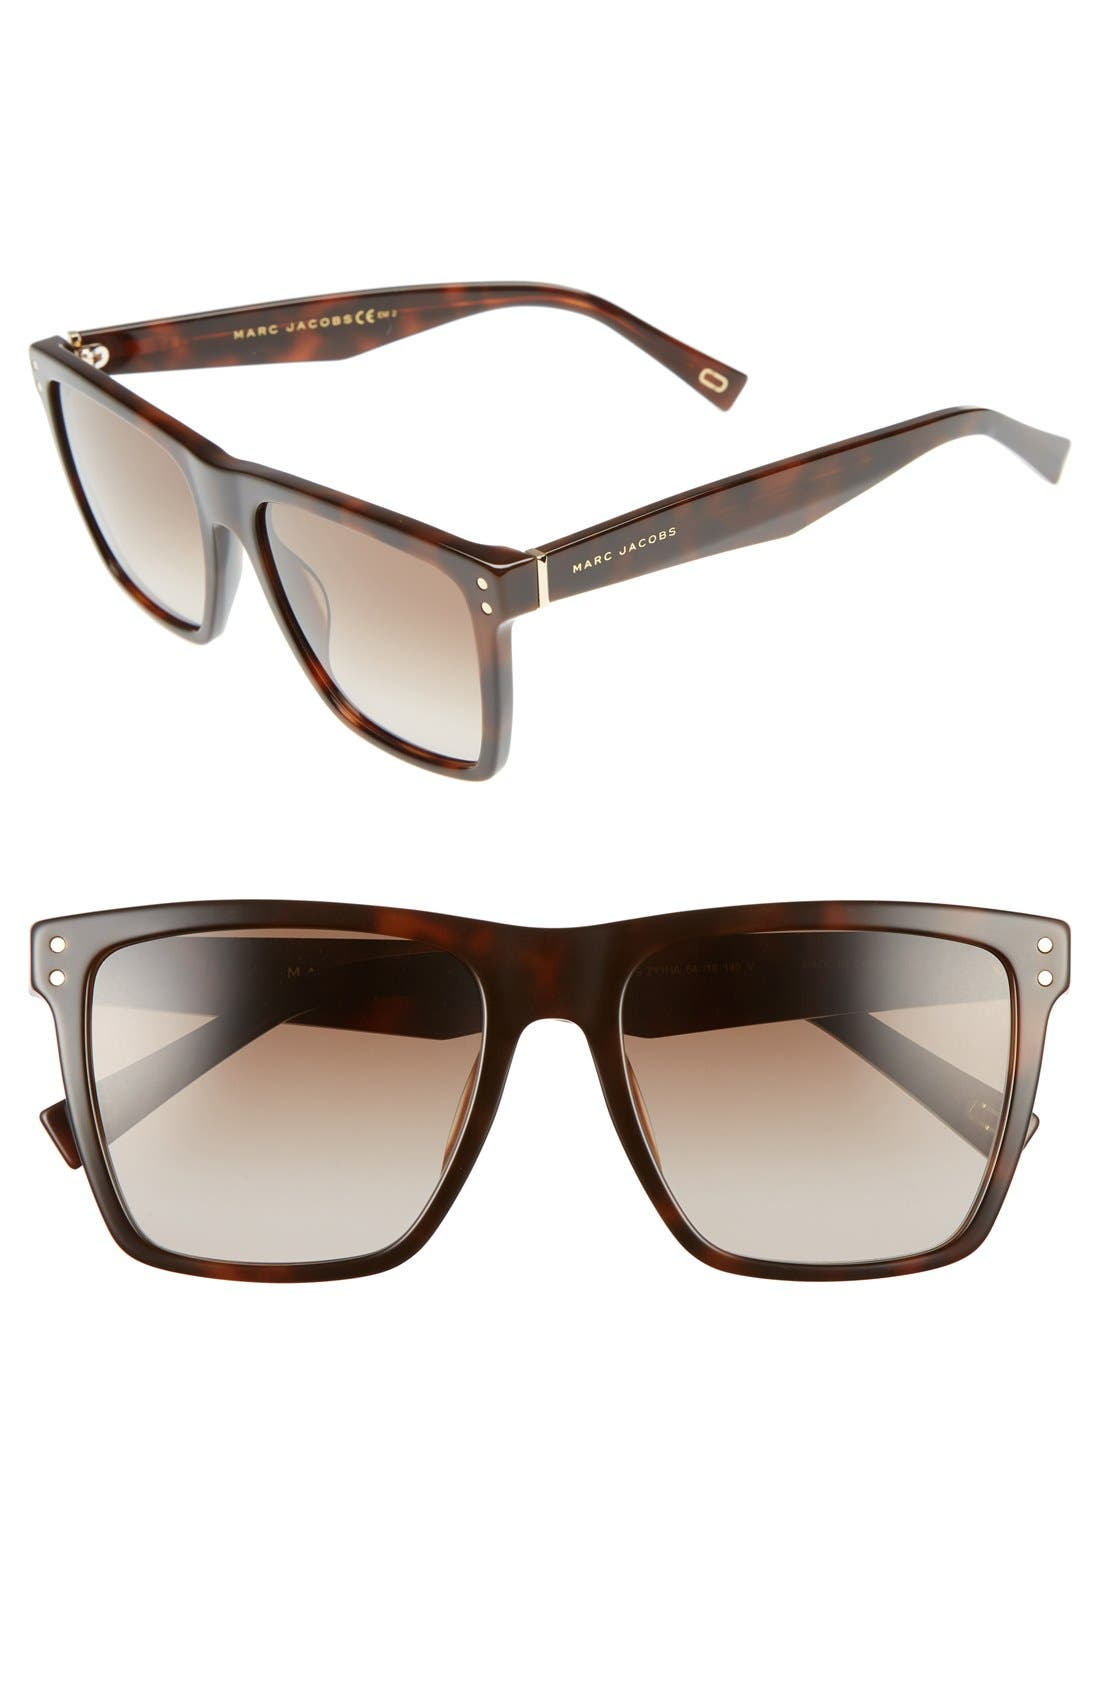 Alternate Image 1 Selected - MARC JACOBS 54mm Flat Top Gradient Square Frame Sunglasses